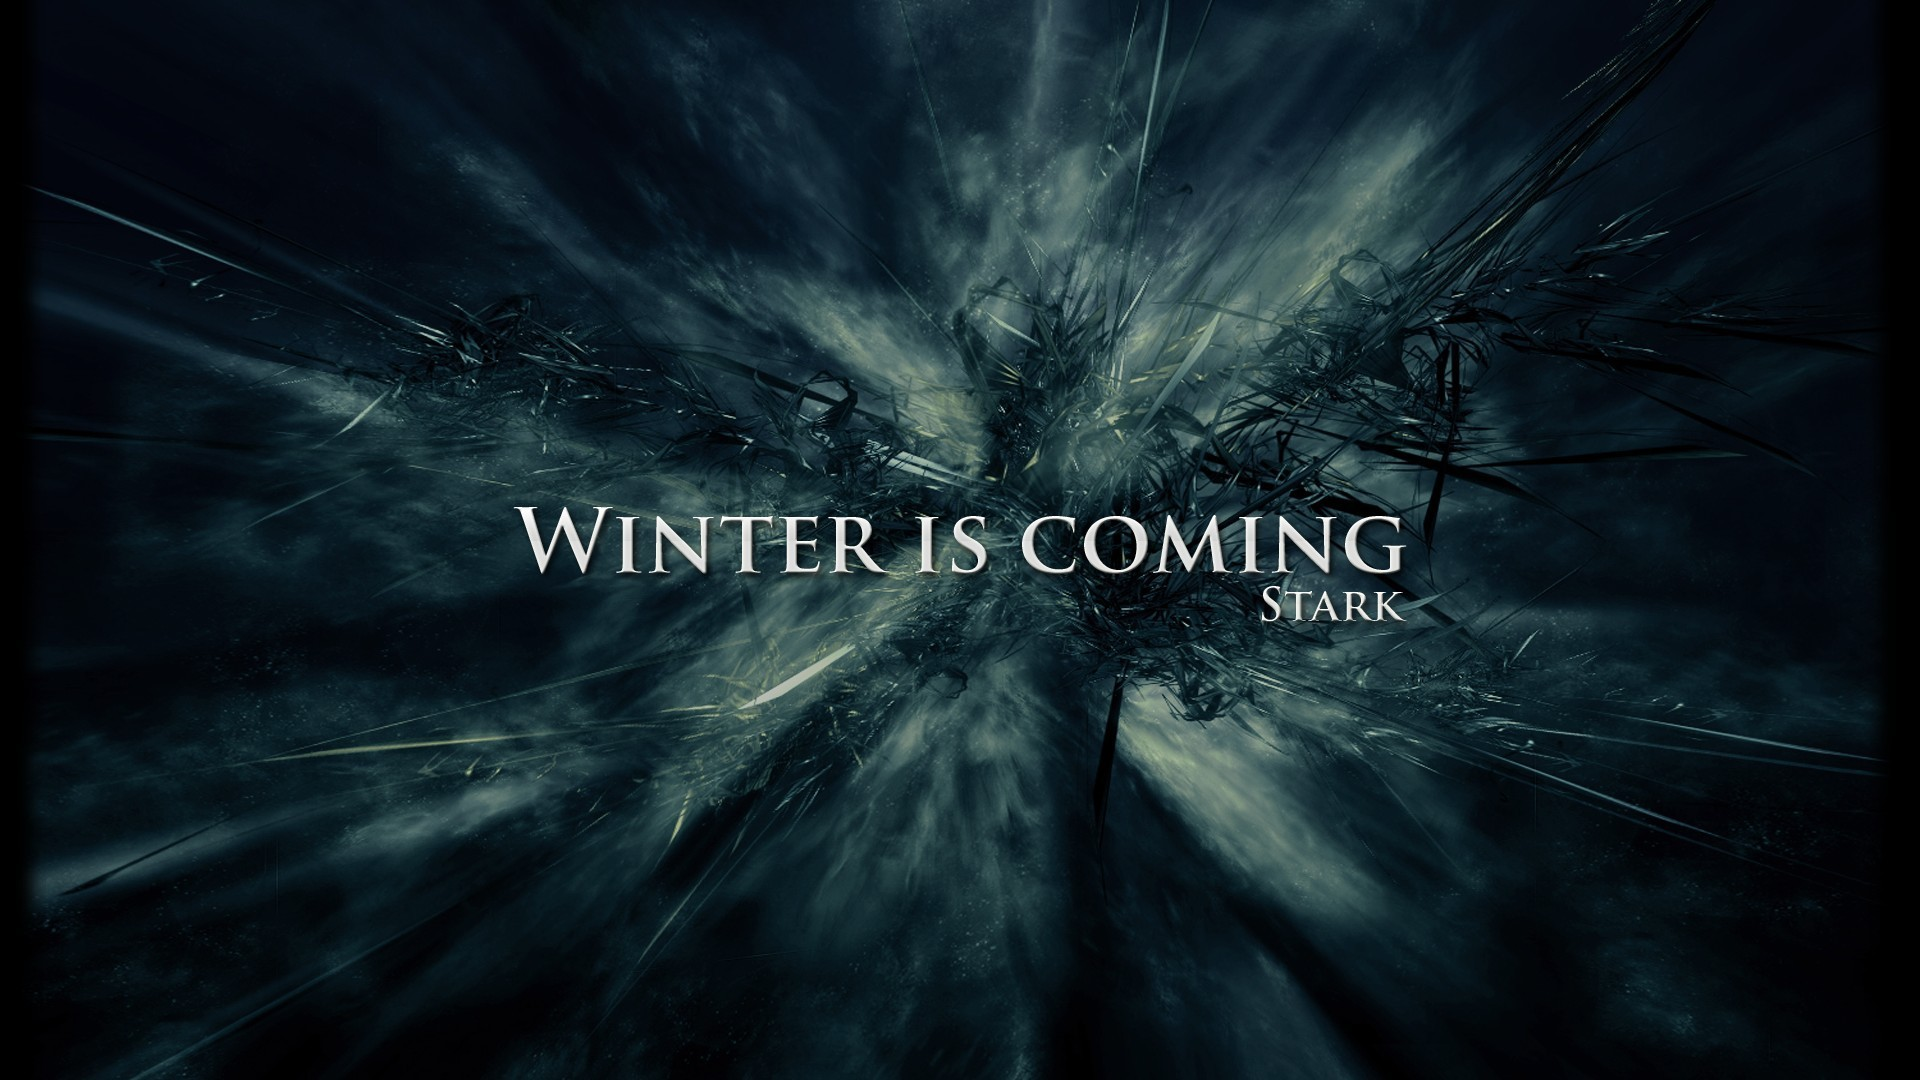 Game Of Thrones Tv Series Quotes Hd Wallpaper   Facebook Cover 1920x1080